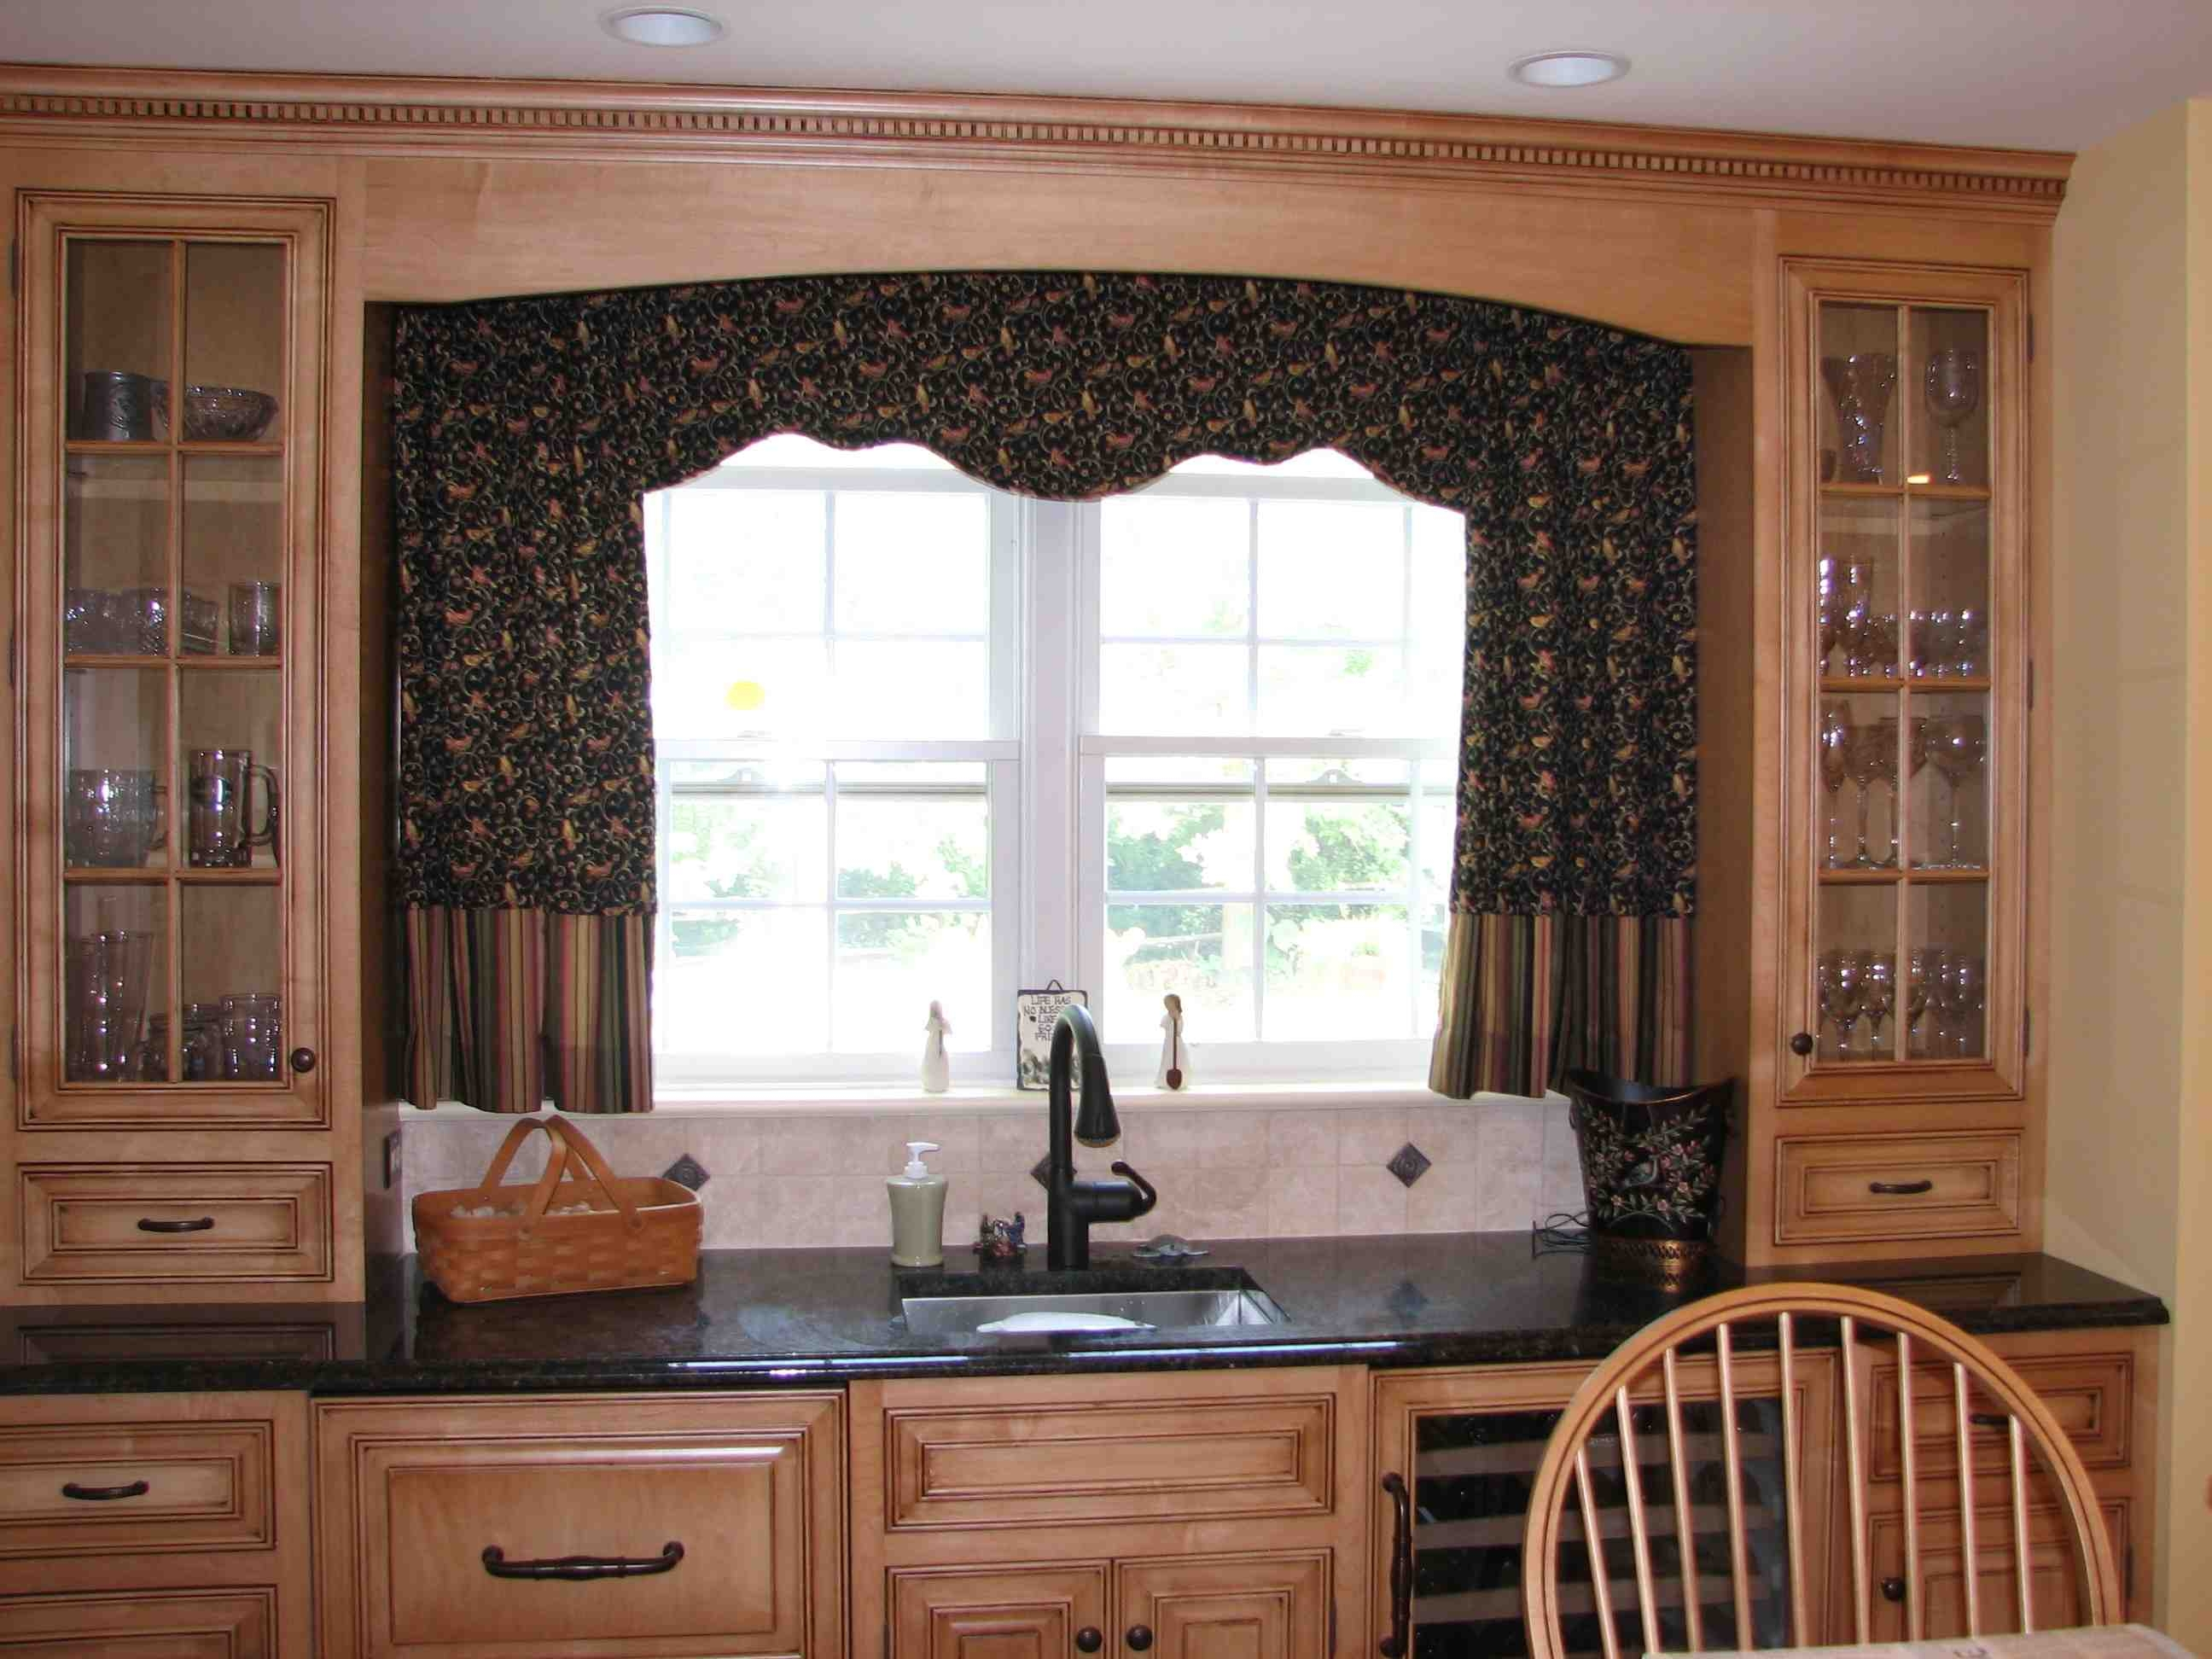 Double window curtain ideas stunning kitchen inspiration